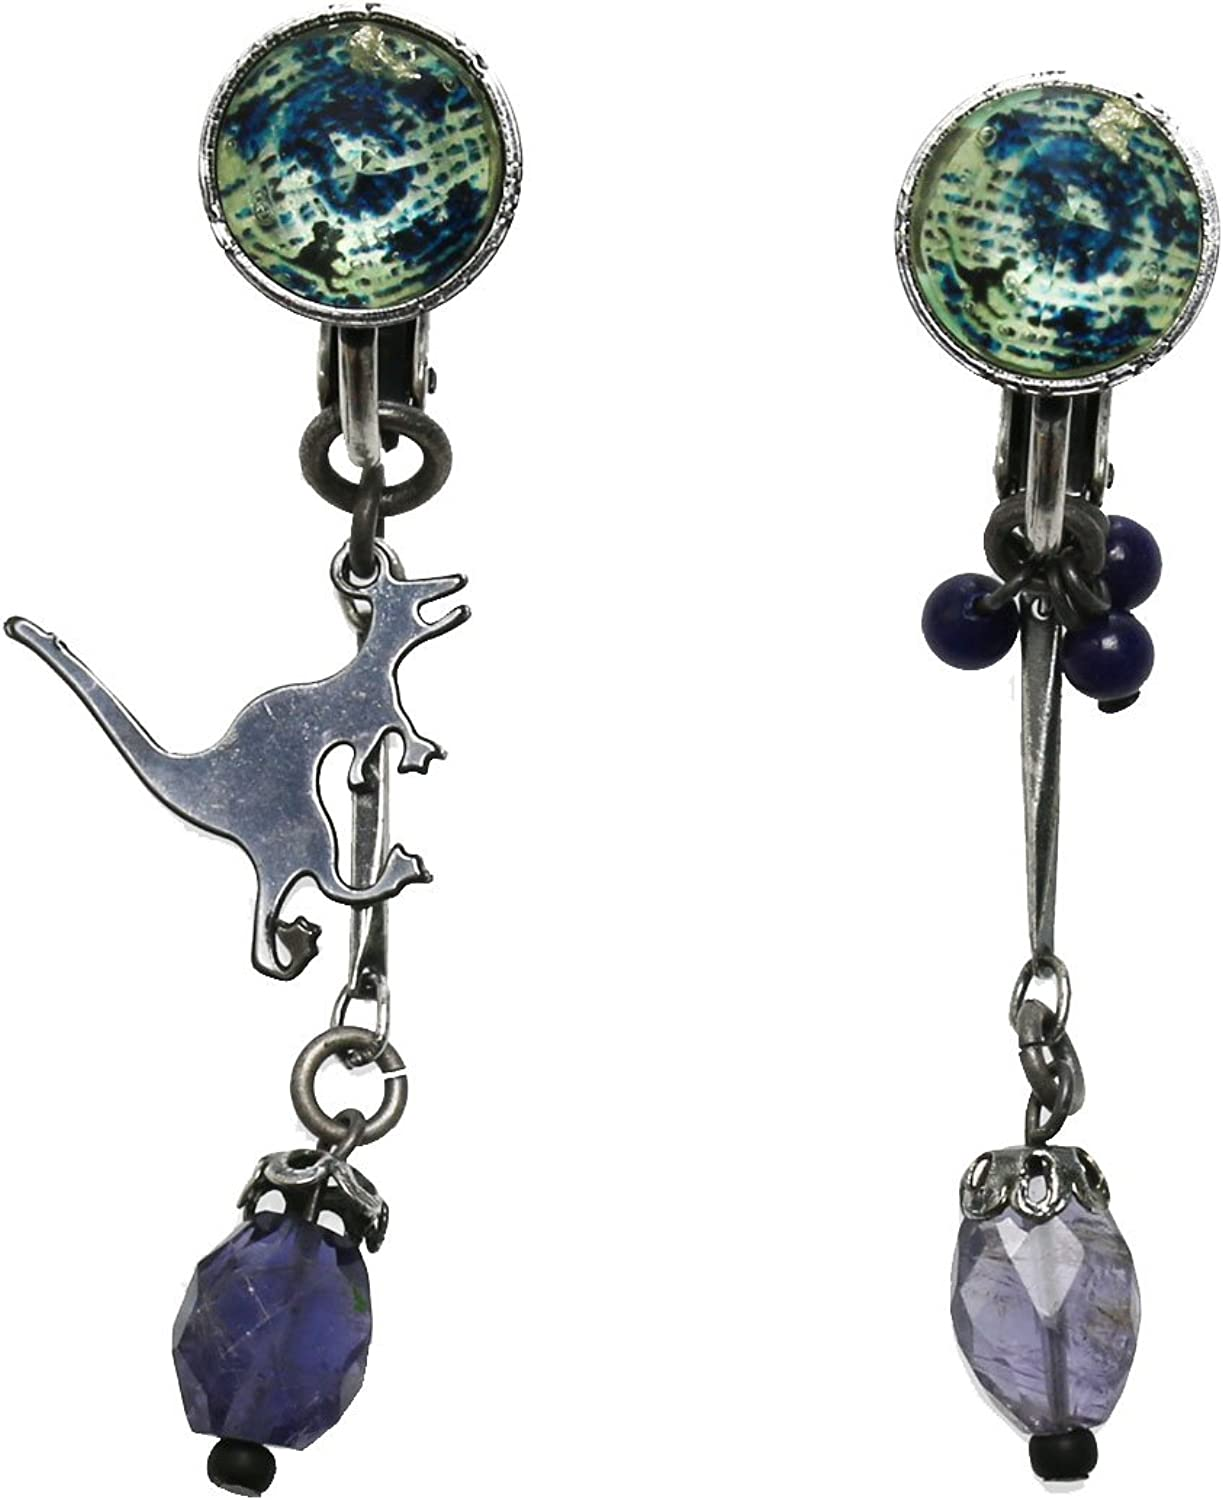 Tamarusan Earrings Dinosaur Lapis Lazuli Iolite Blue Popular Featured Staylish